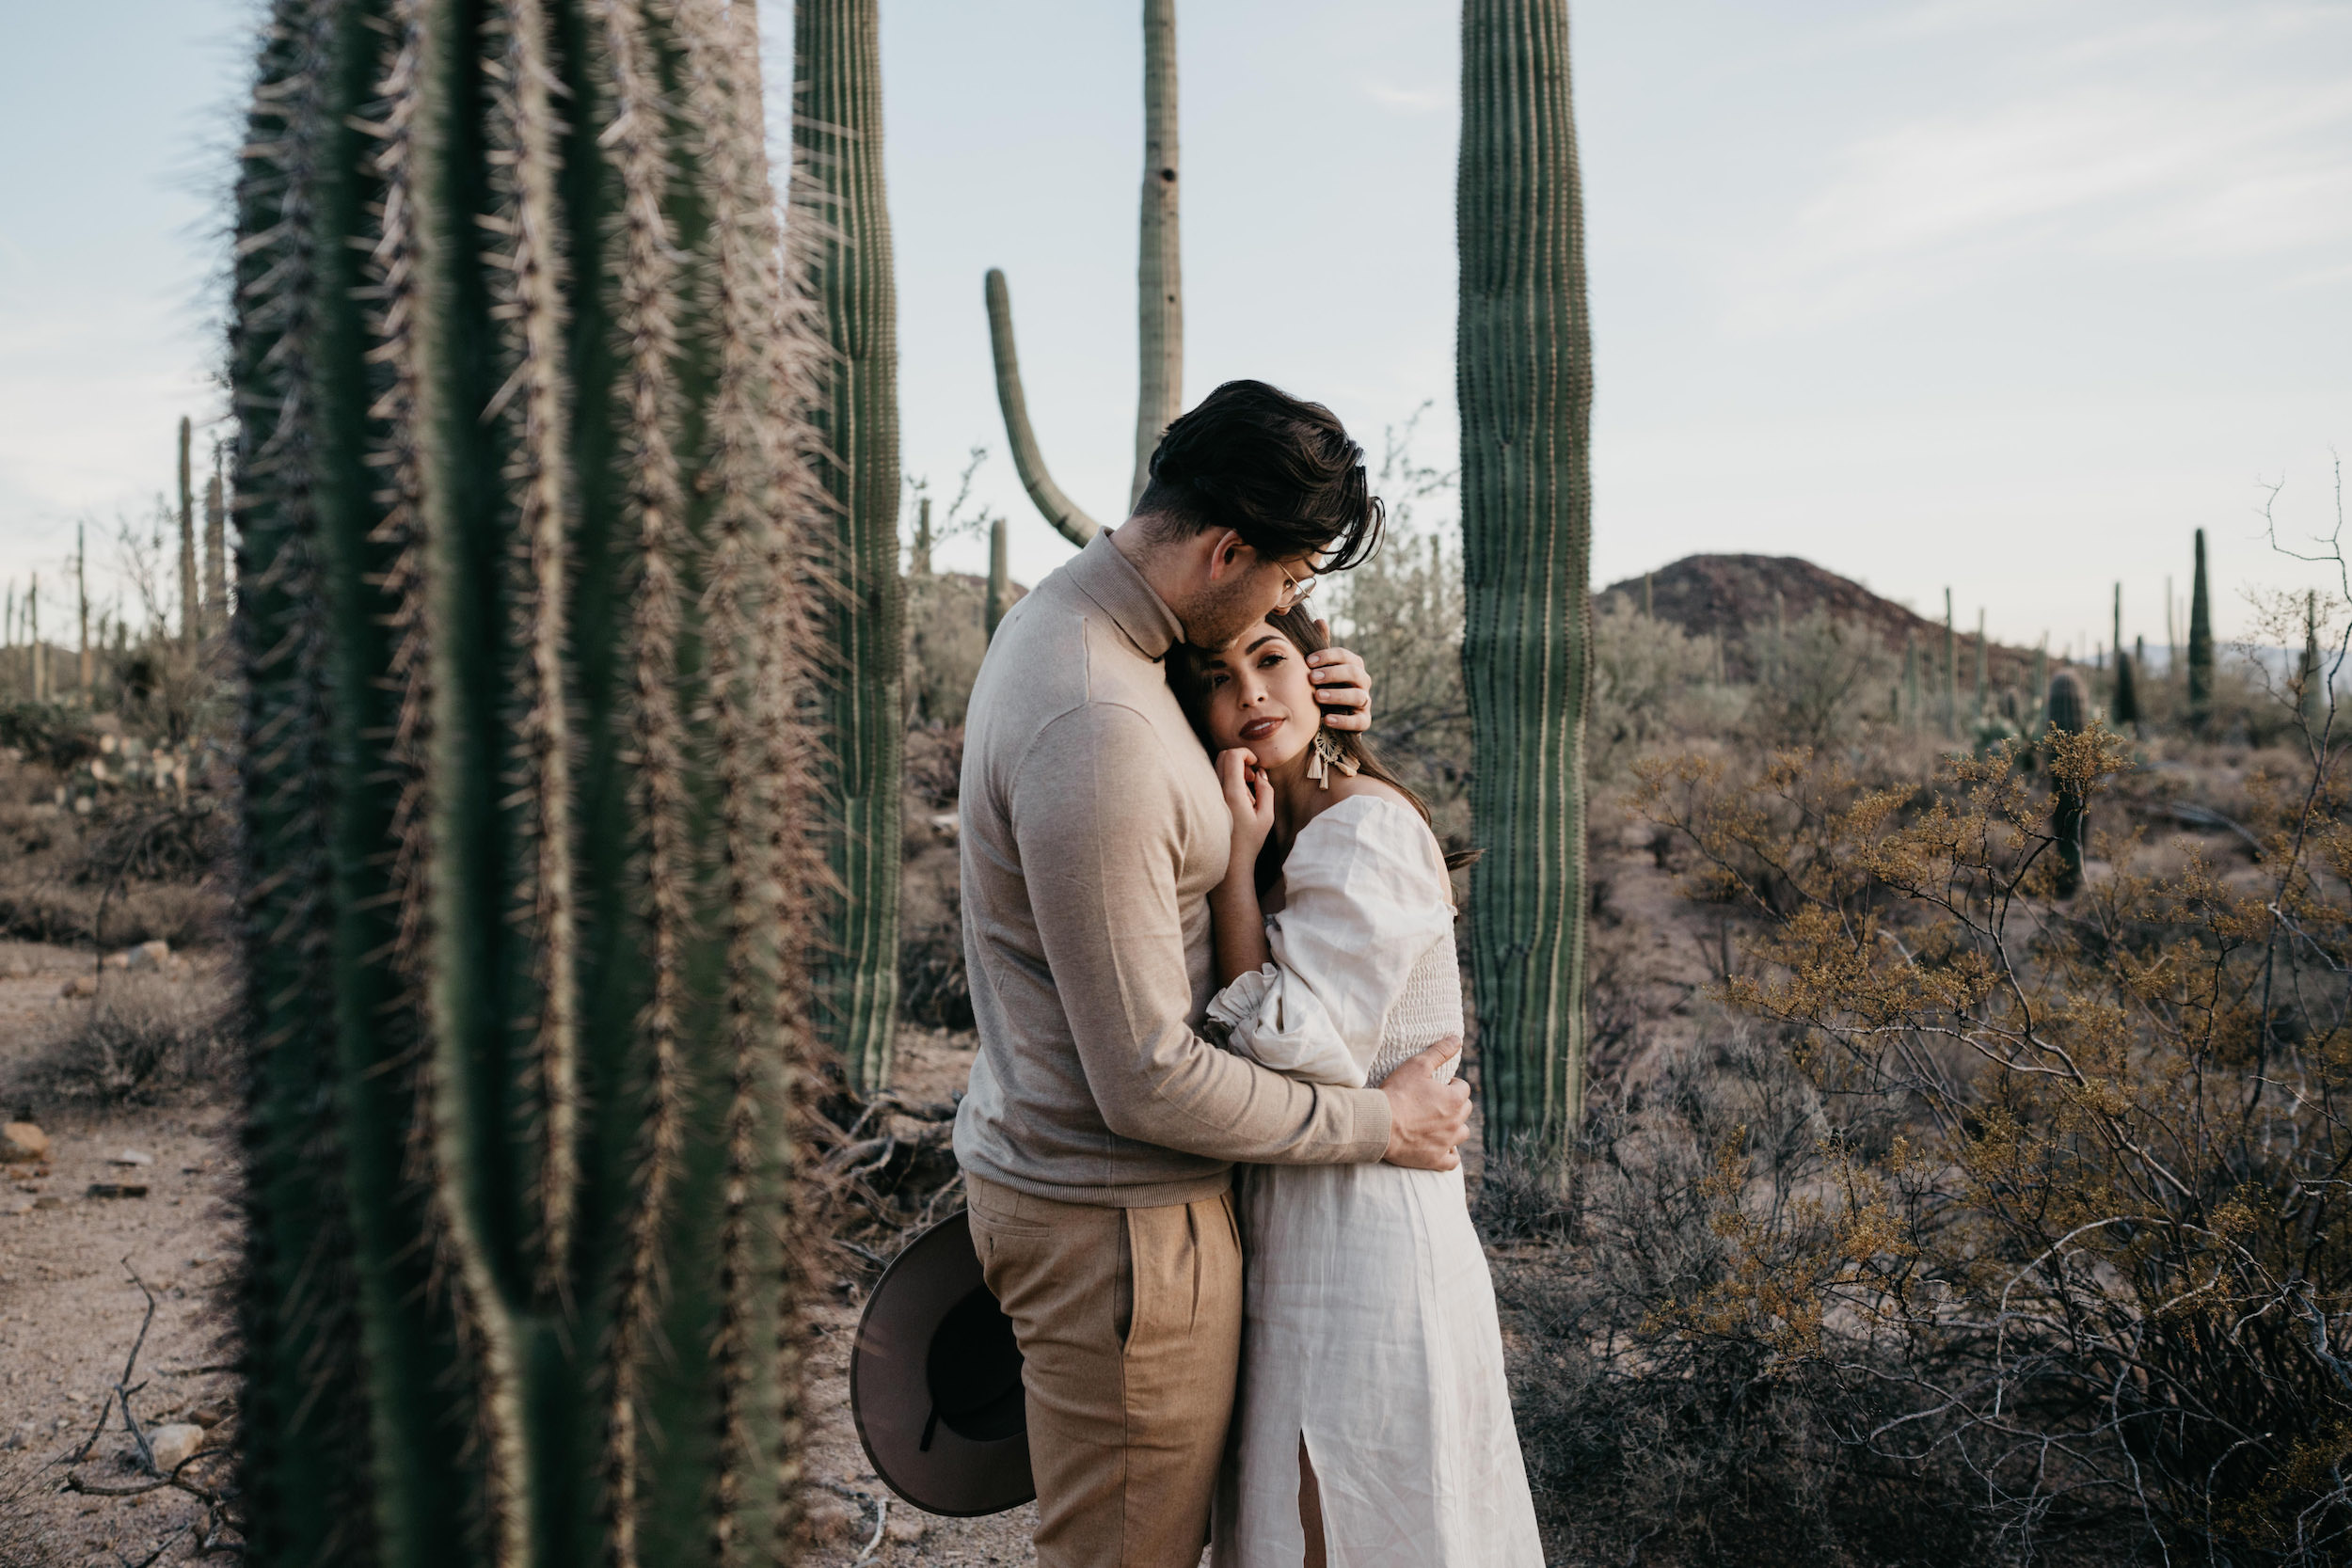 Couple embracing during their desert engagement photoshoot, image by Fatima Elreda Photo